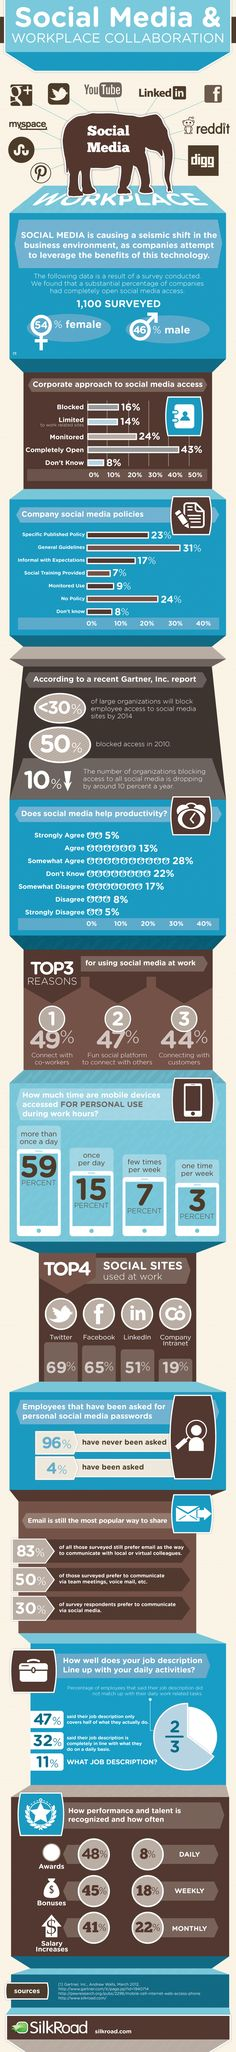 """Social Media Policy & Workplace Collaboration [INFOGRAPHIC]""  #SocialMedia"